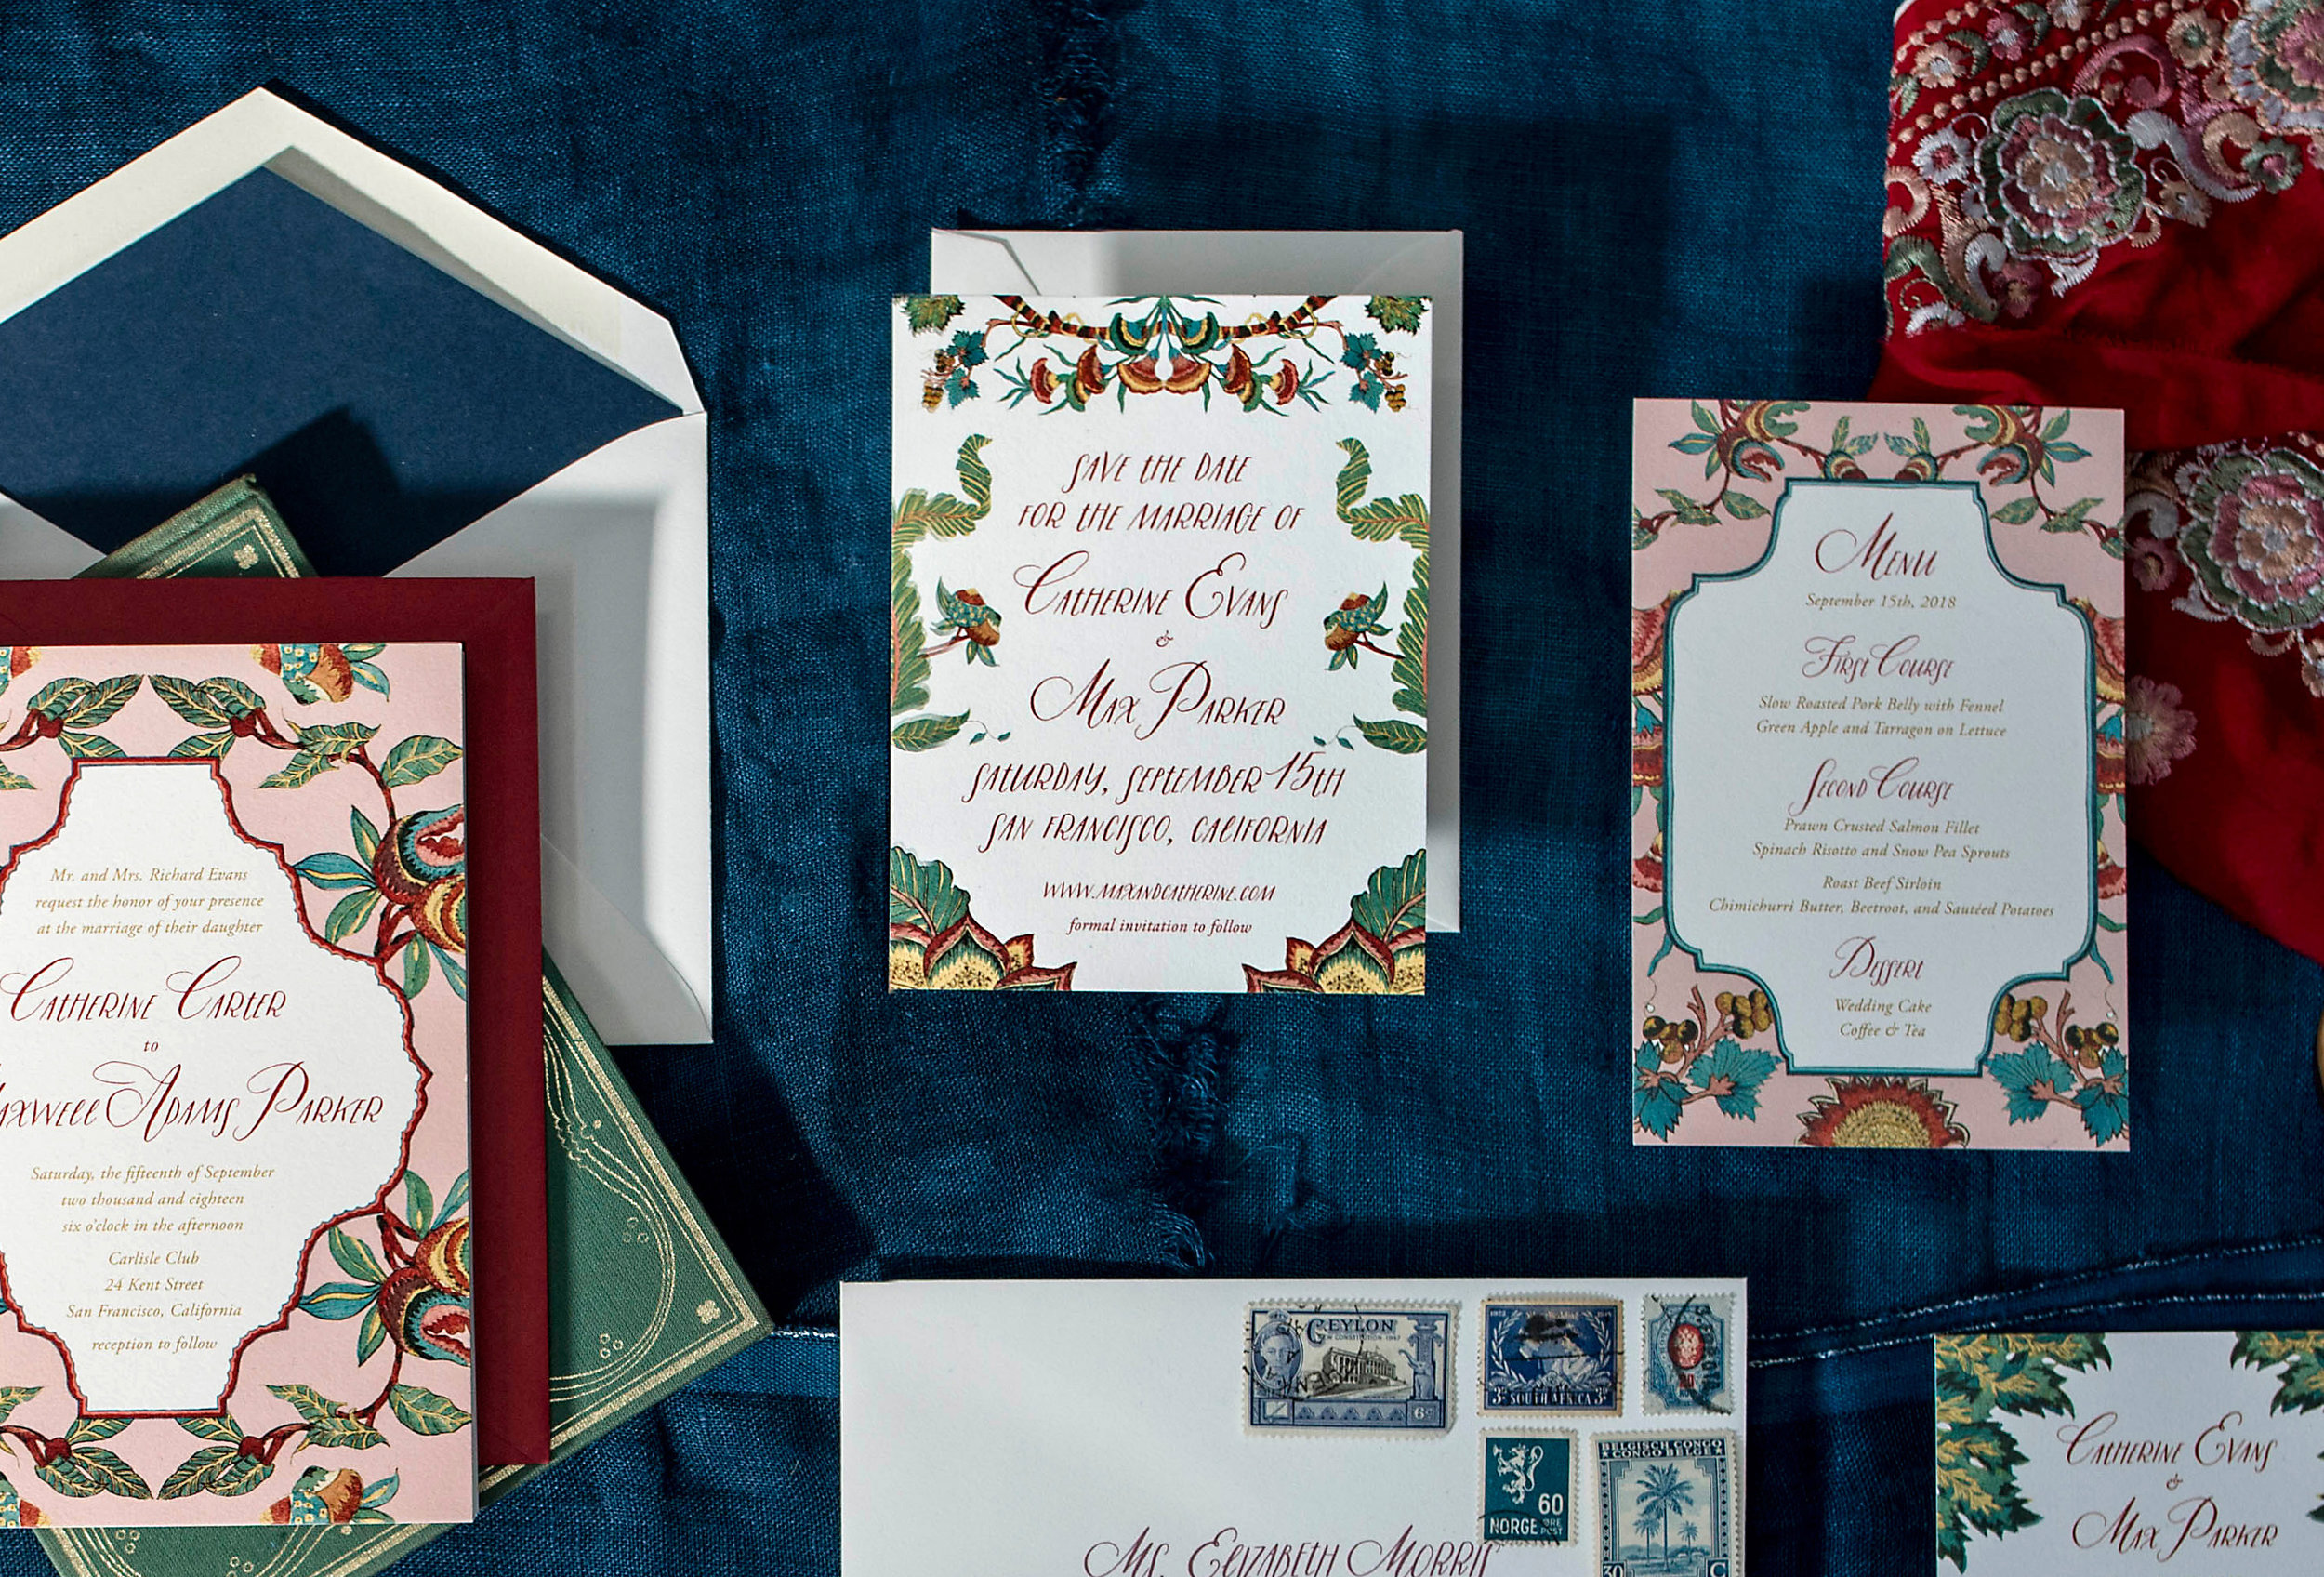 mamaycrop3-bright-unique-vintage-wedding-invitations-hellotenfold-329.jpg